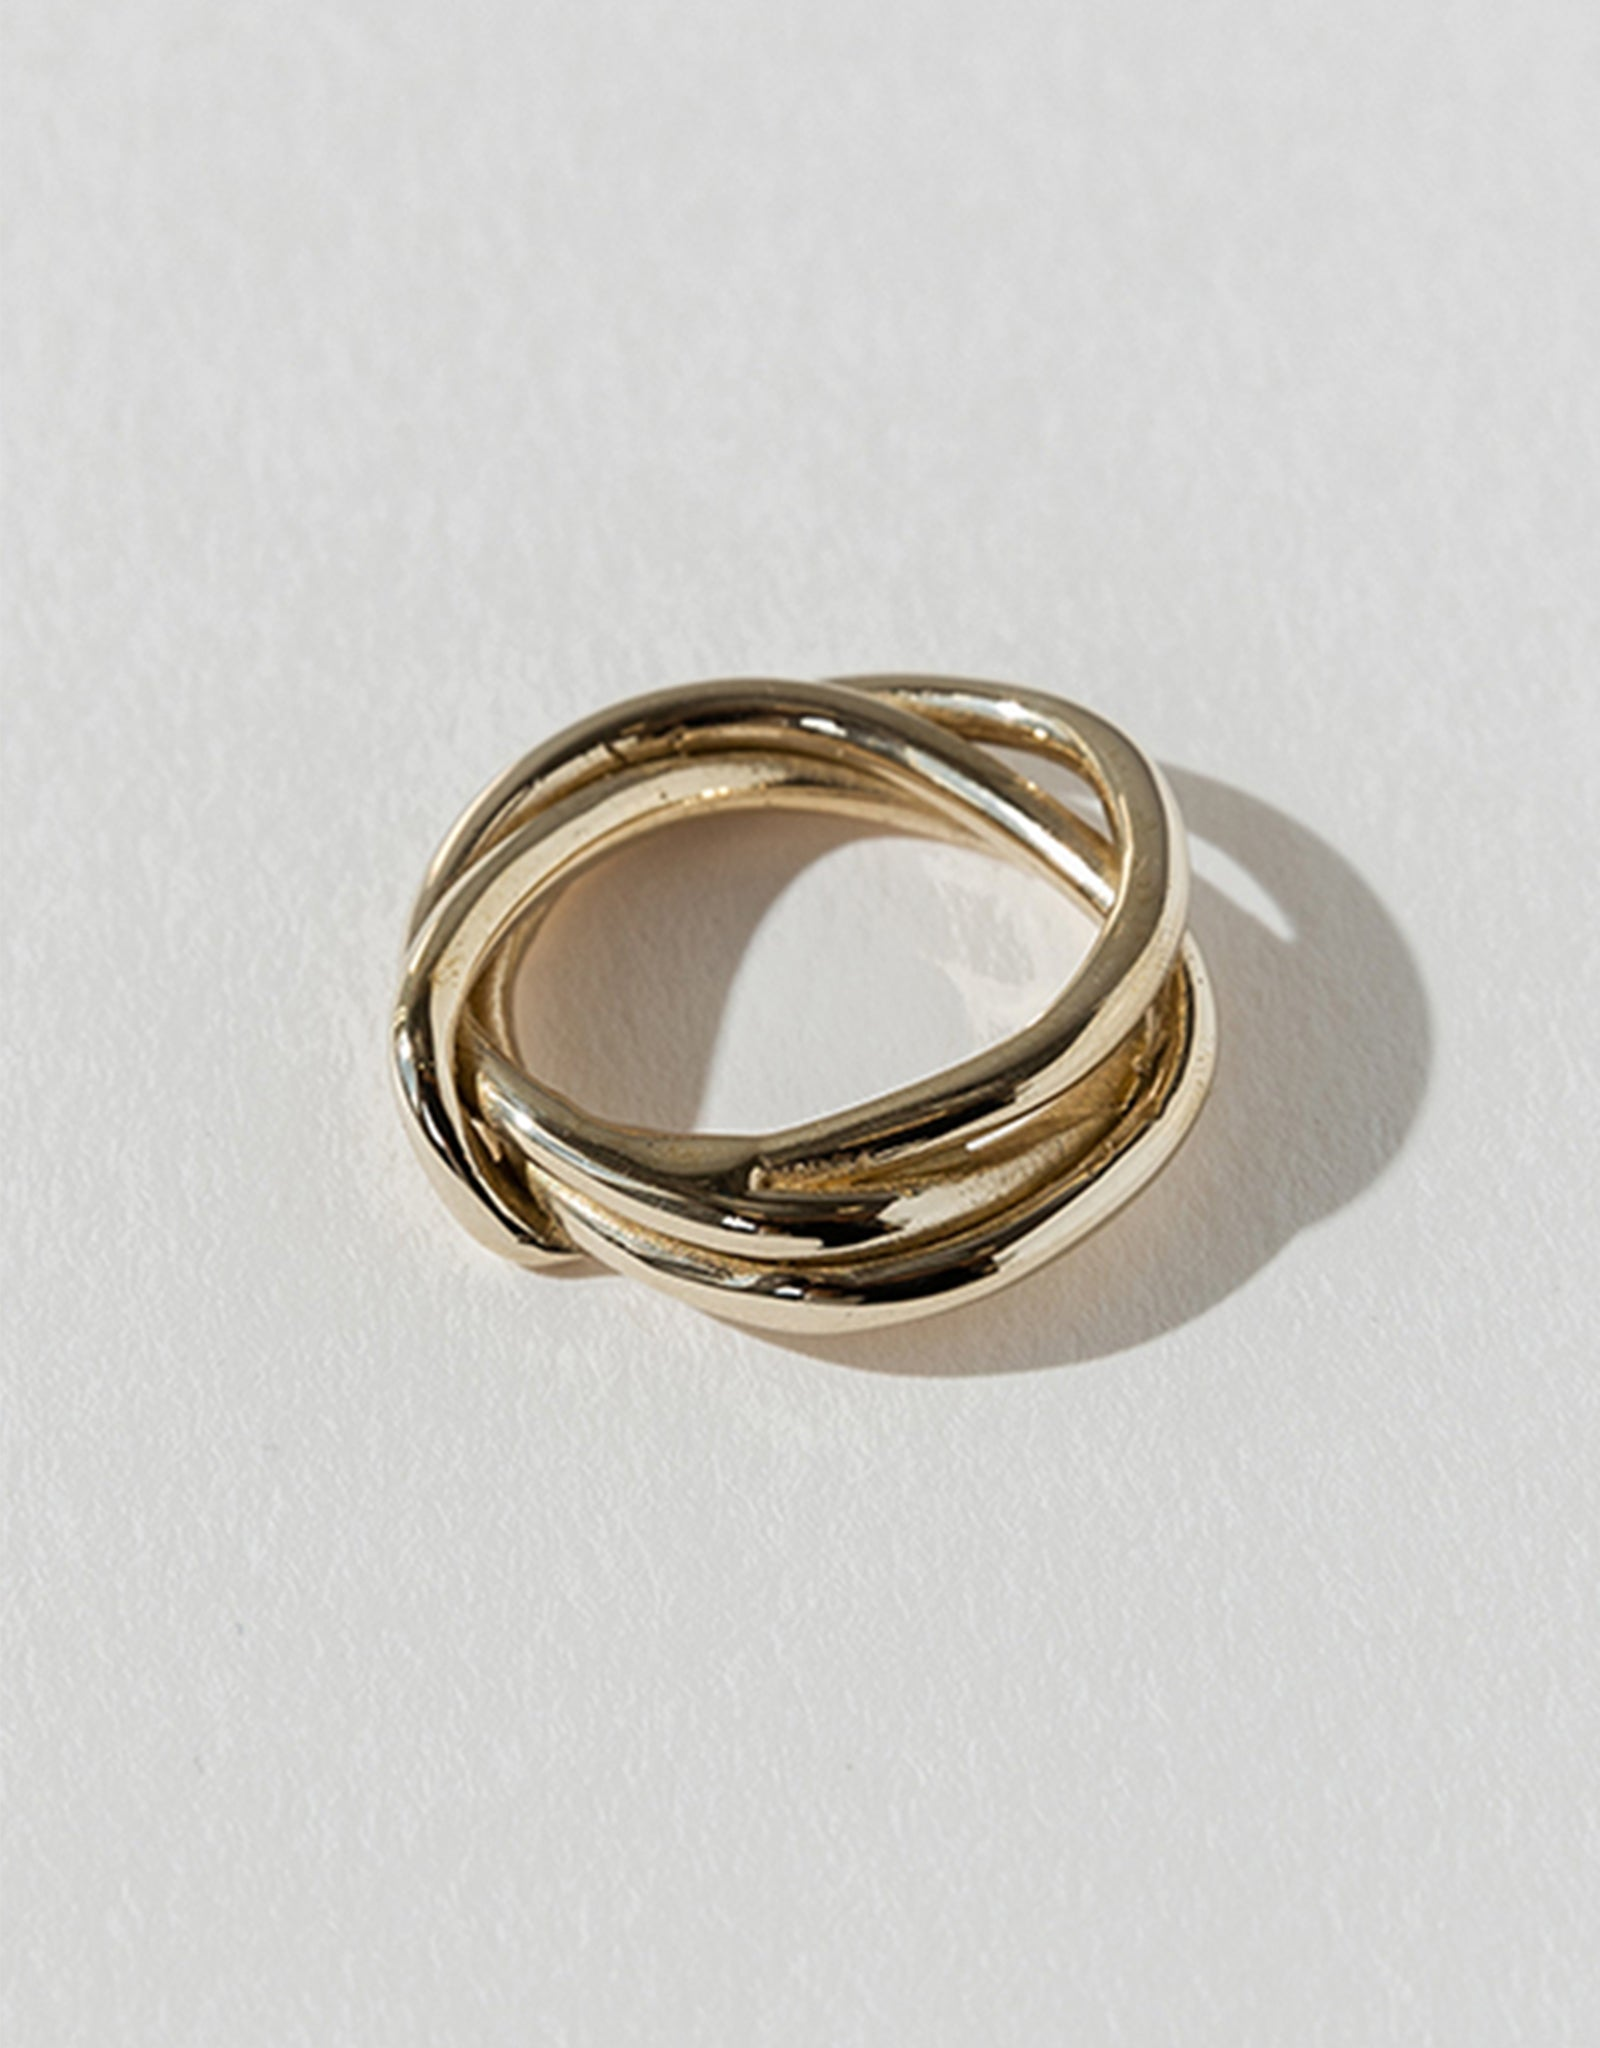 Faris bronze Tangle Ring. Available at FAWN Toronto.